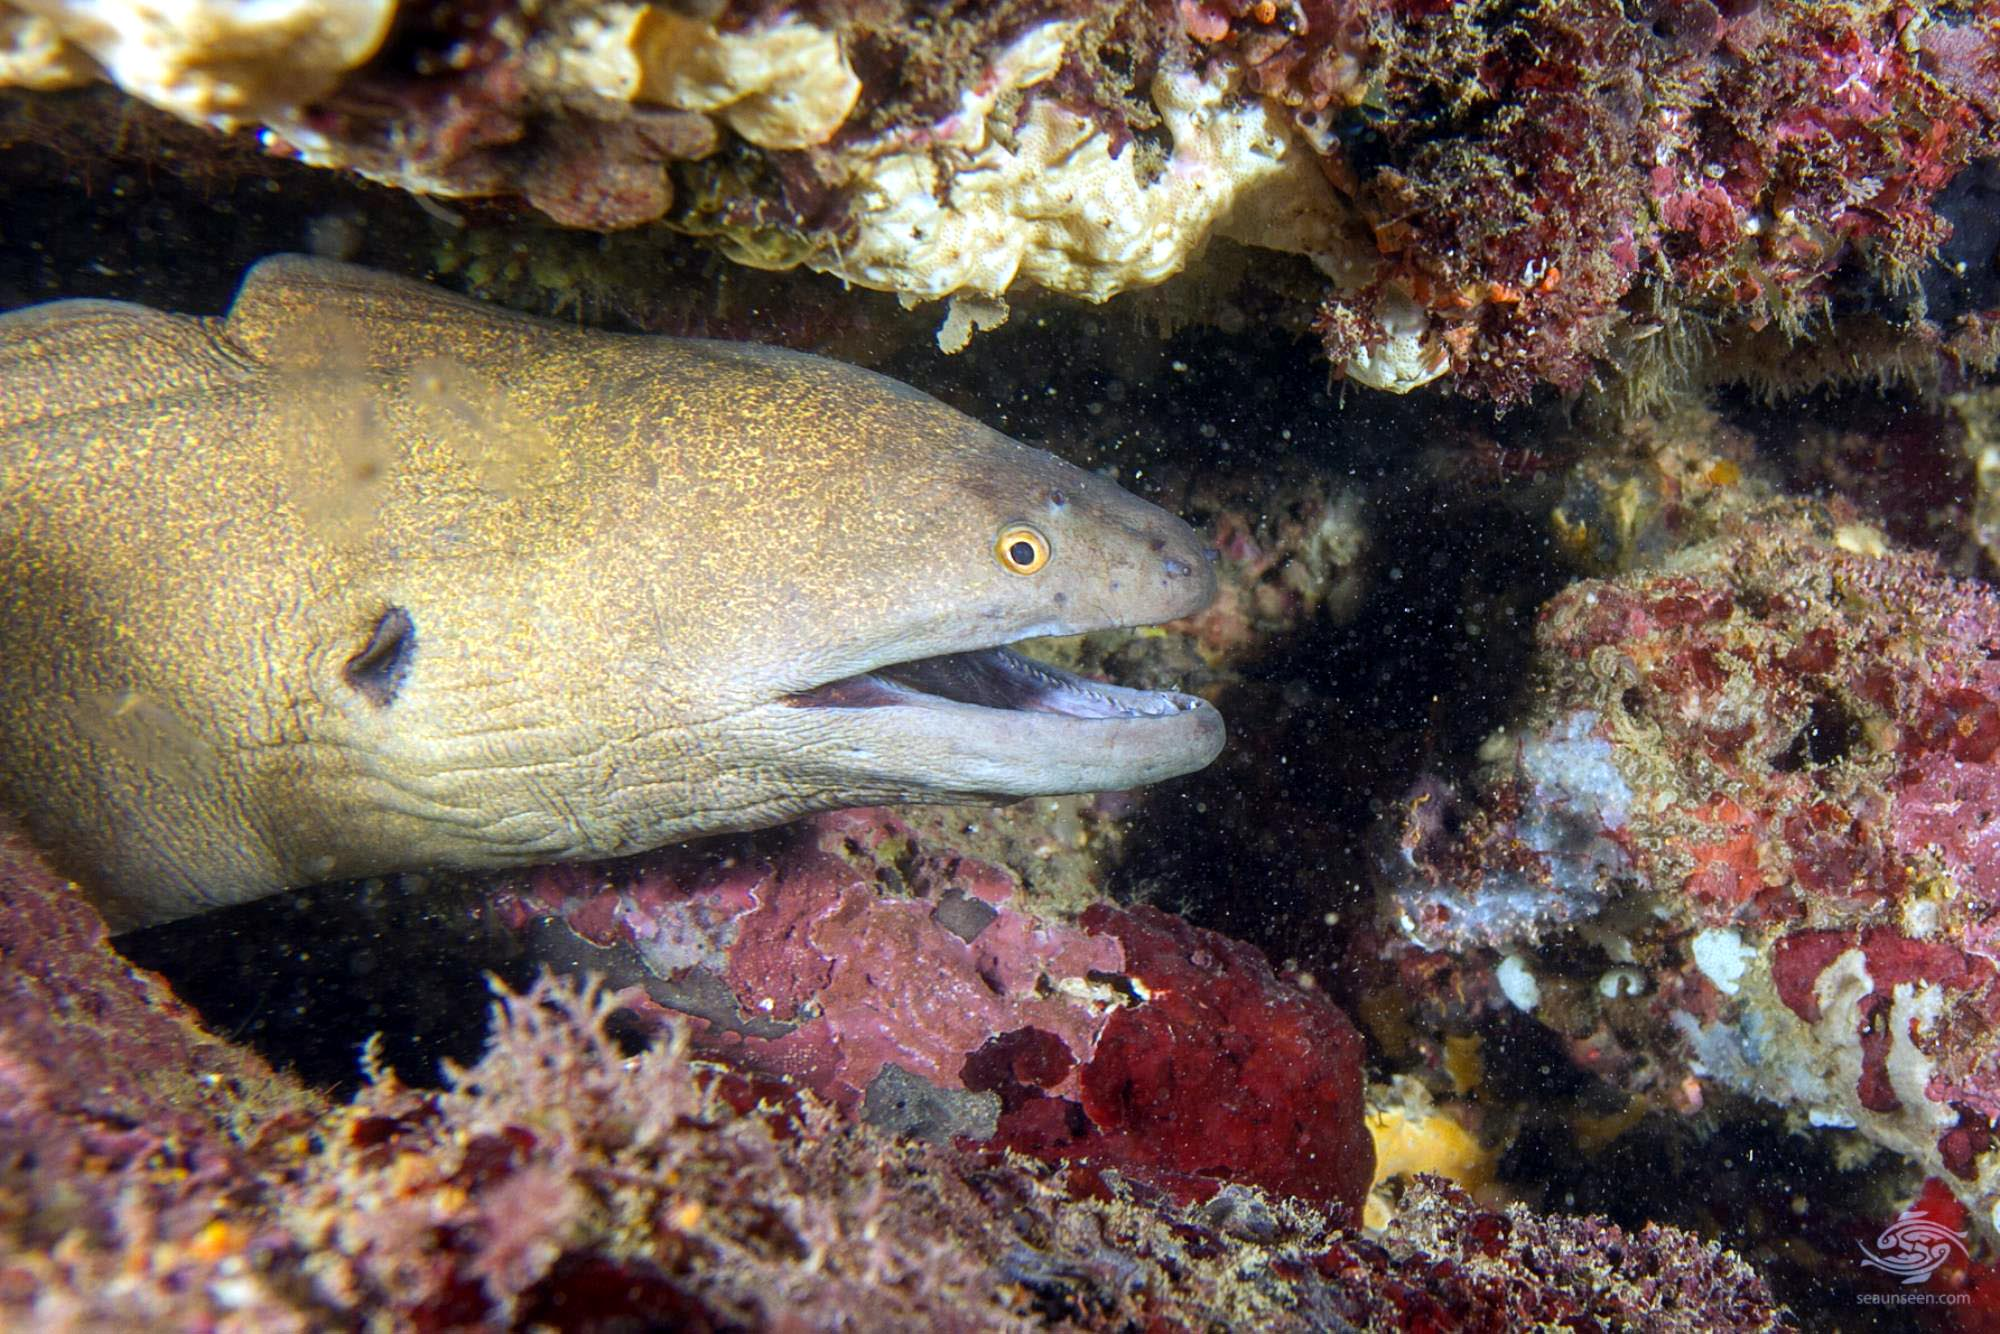 giant moray (Gymnothorax javanicus)